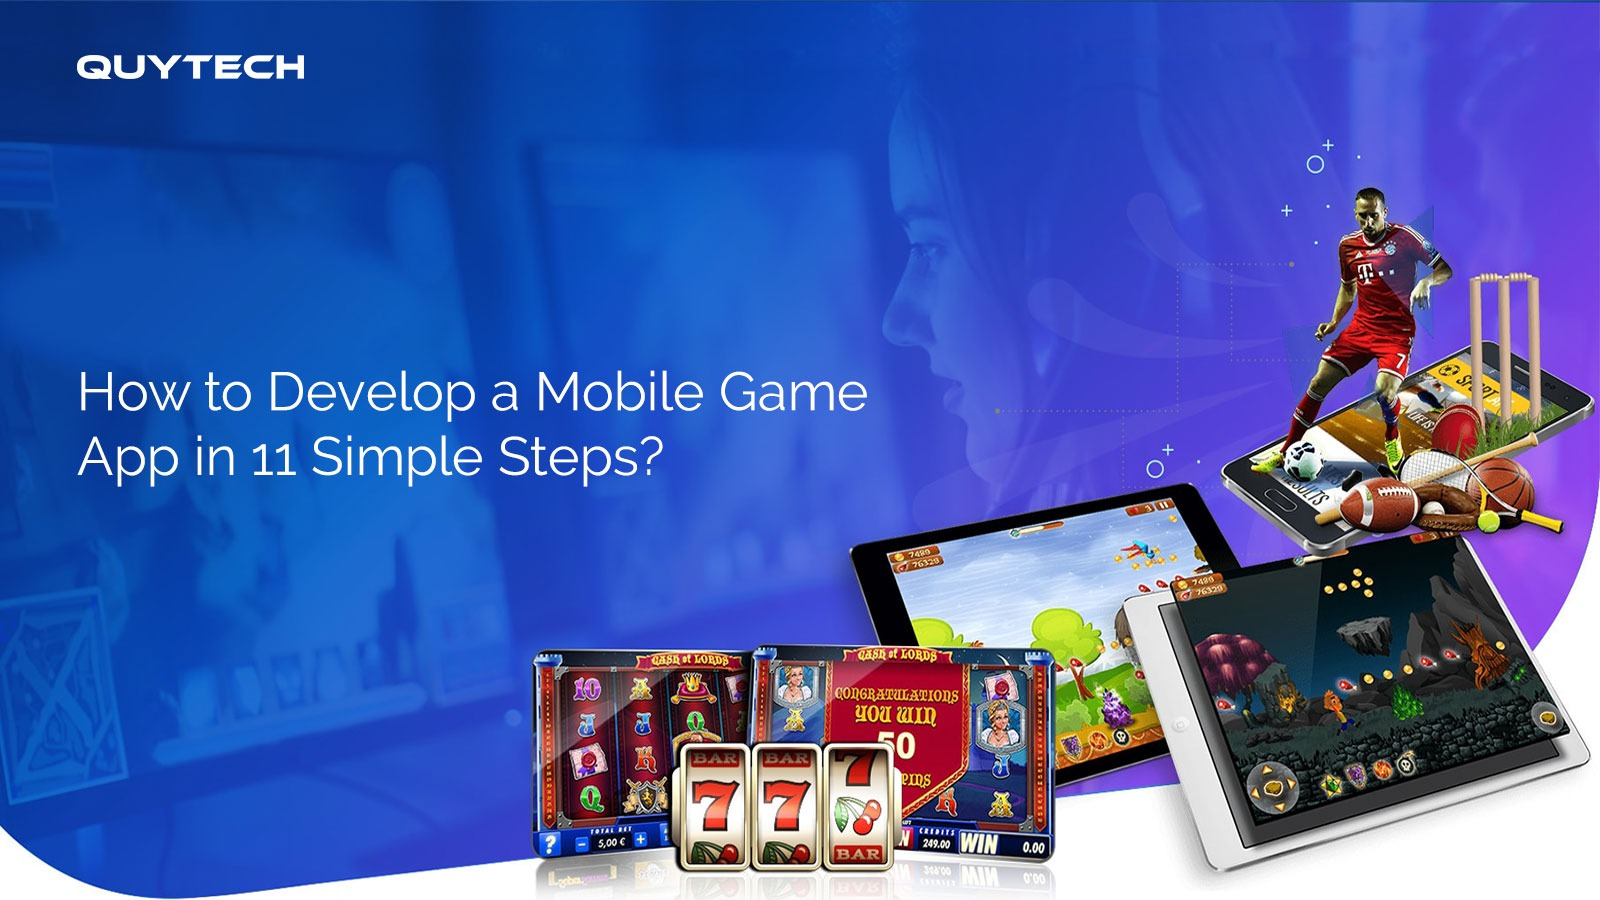 Mobile Game App Development Process Explained in 11 Steps